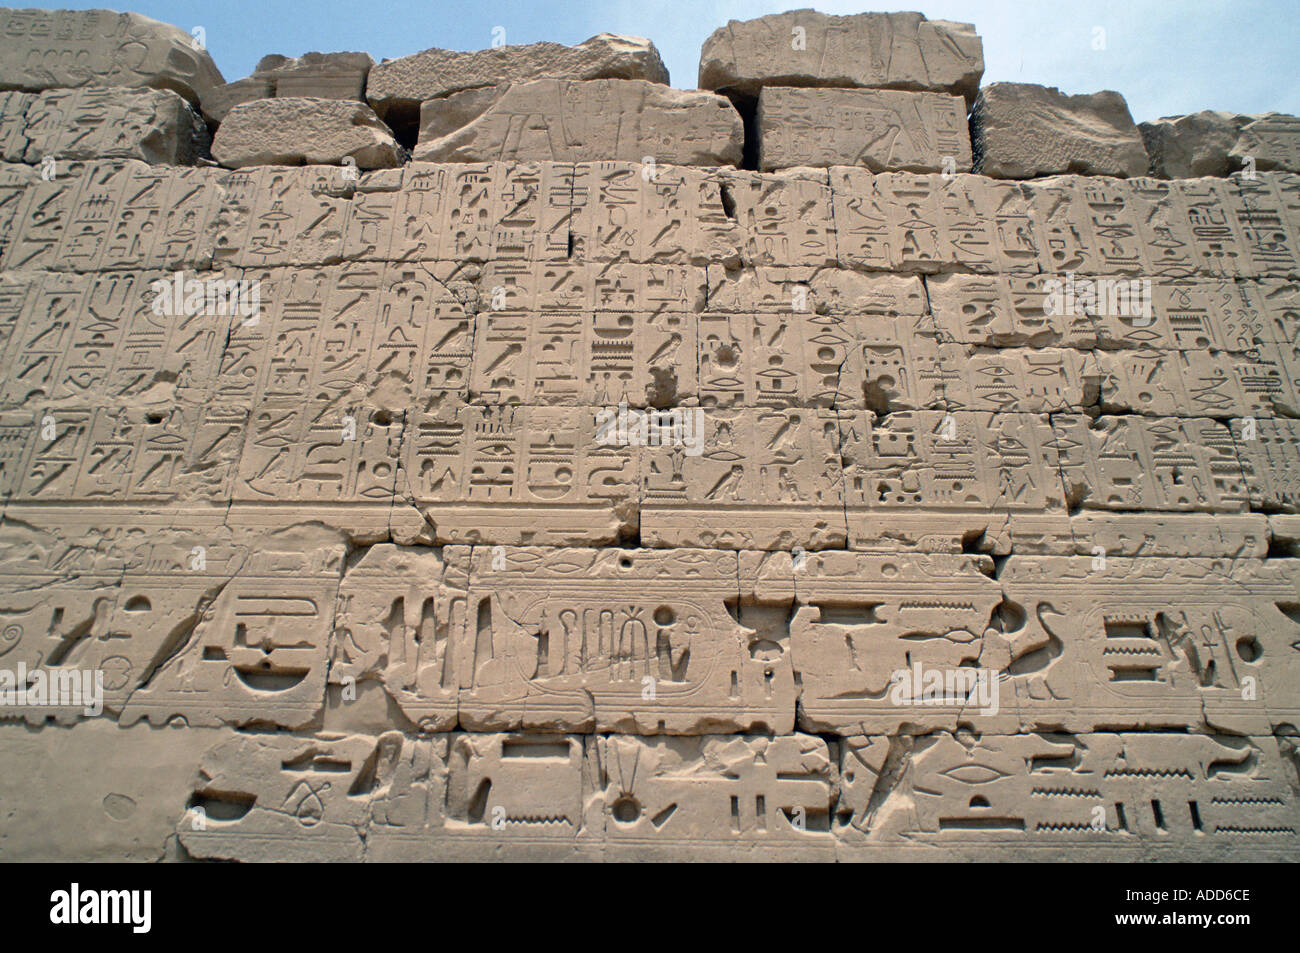 Ancient inscriptions on a wall in the Great Hypostyle Hall Karnak Temple Luxor Egypt Stock Photo